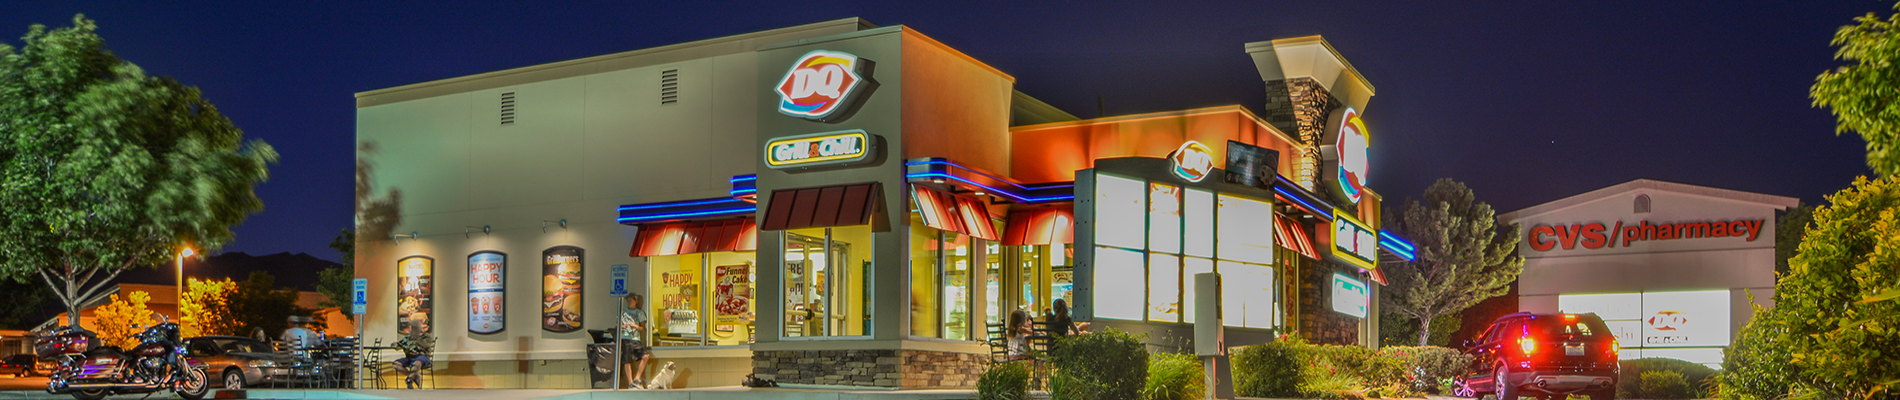 Night shot of Dairy Queen Building in Carson City, Nevada.